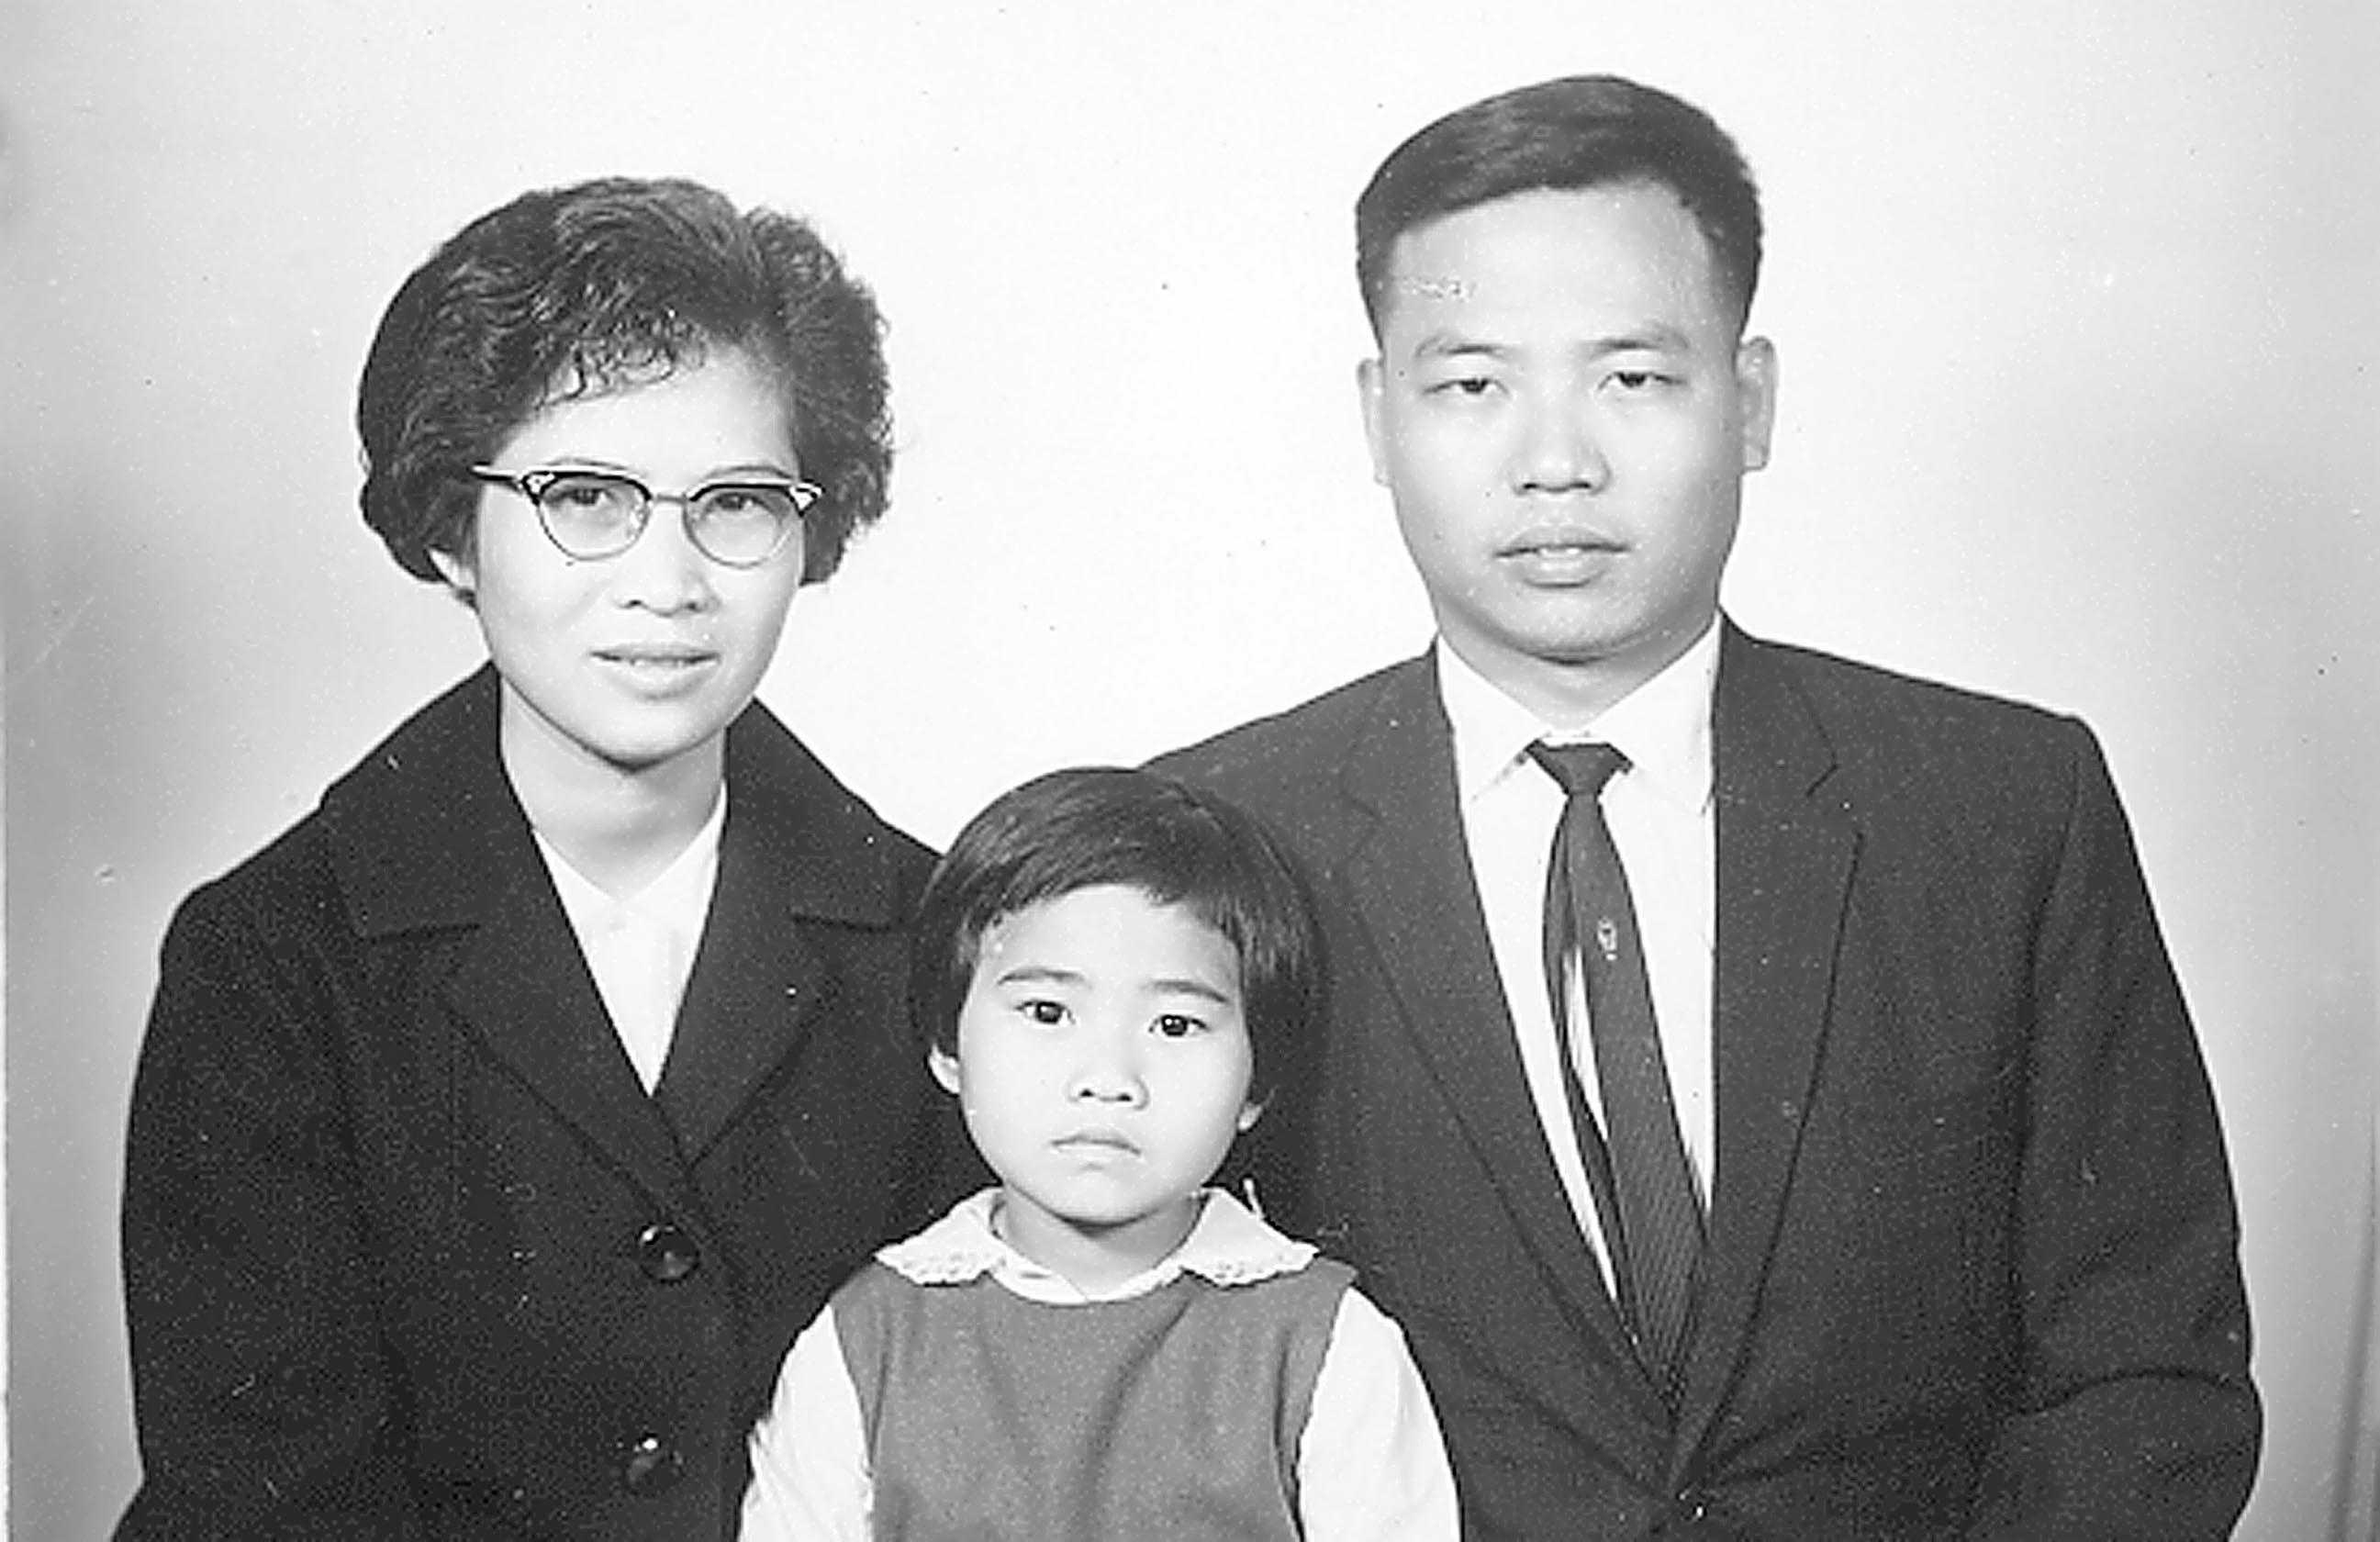 Chans 1964 immigration photo